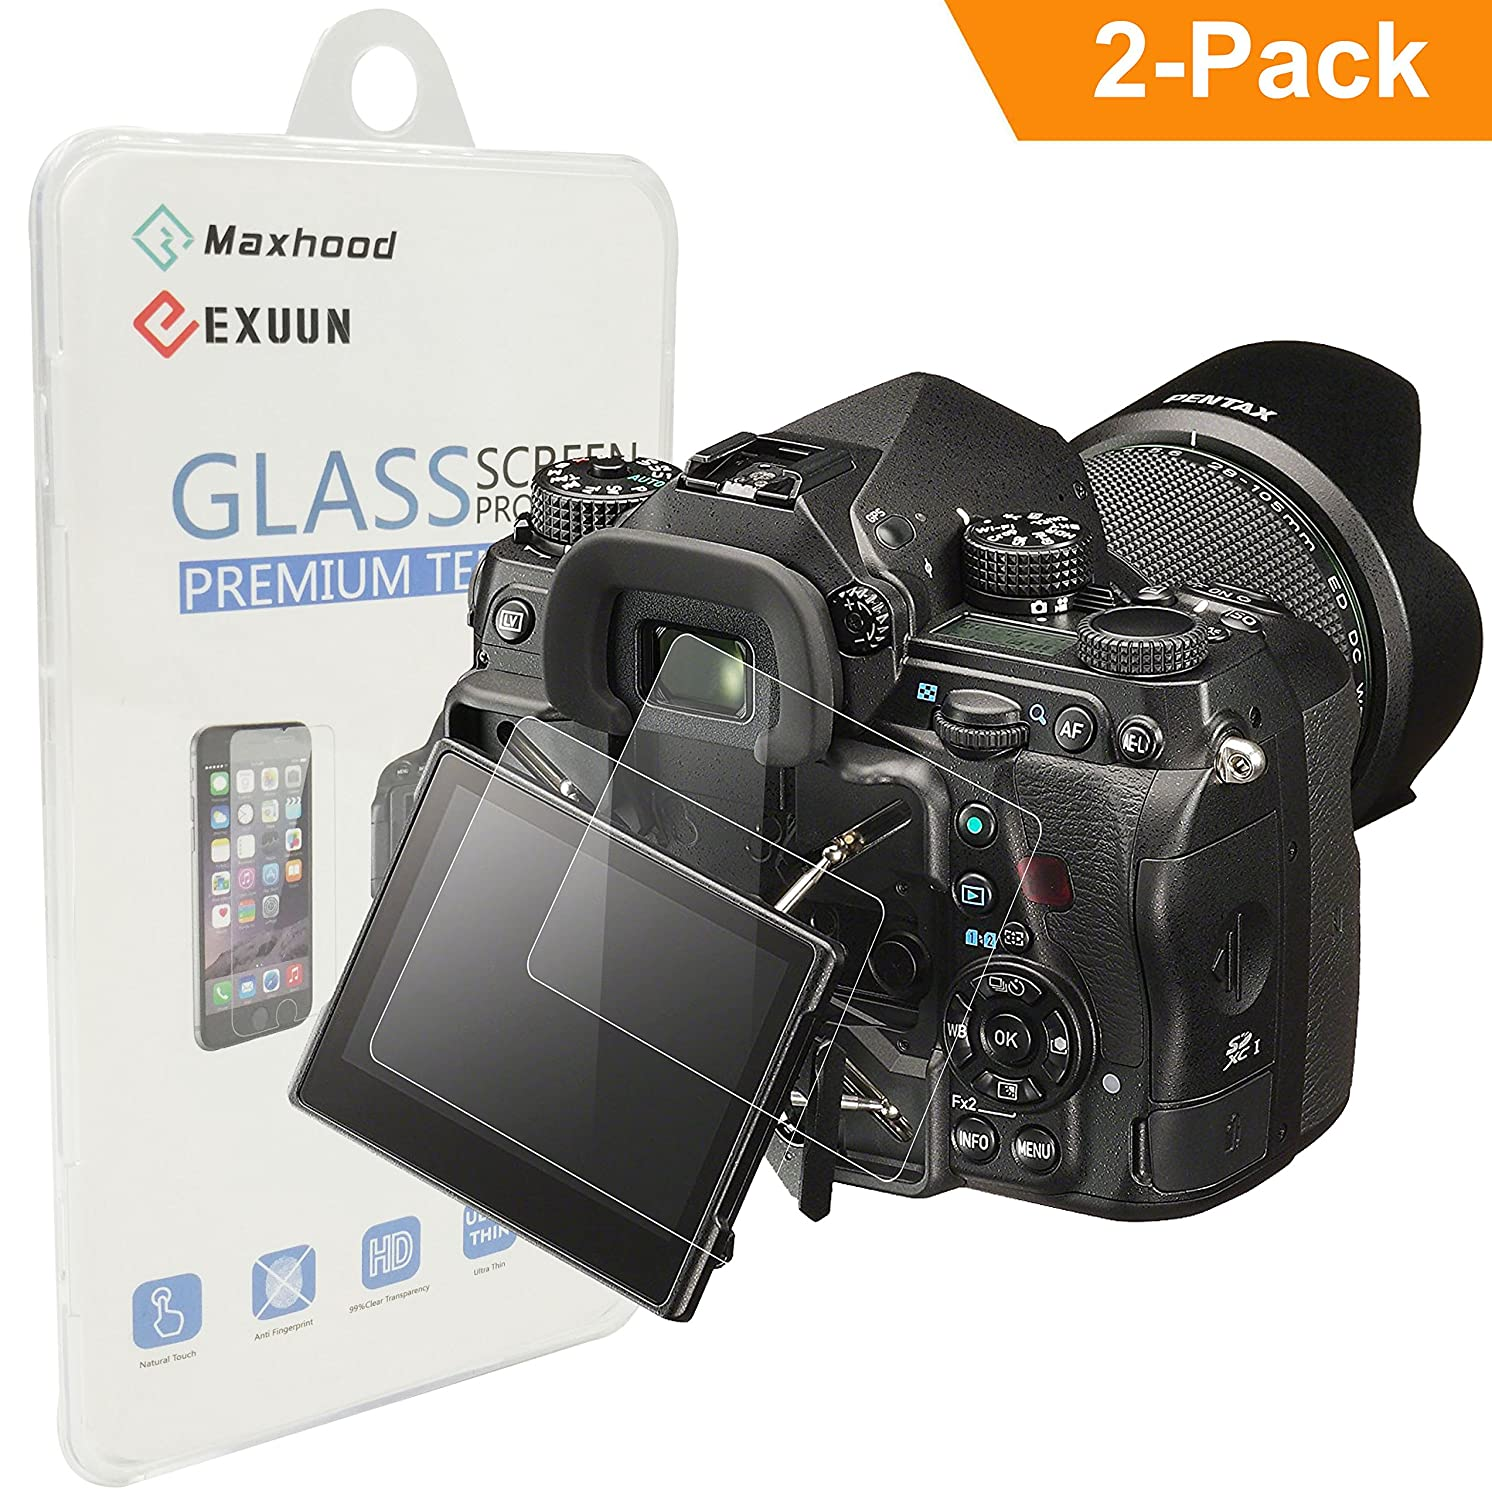 (2-Pack) Pentax K-1/Pentax K-1 Mark II/Nikon D5600 Tempered Glass Screen Protector, Exuun Optical 9H Hardness 0.3mm Ultra-Thin DSLR Screen Protector Glass for Pentax K-1/K-1 Mark II Nikon D5600 4332104629